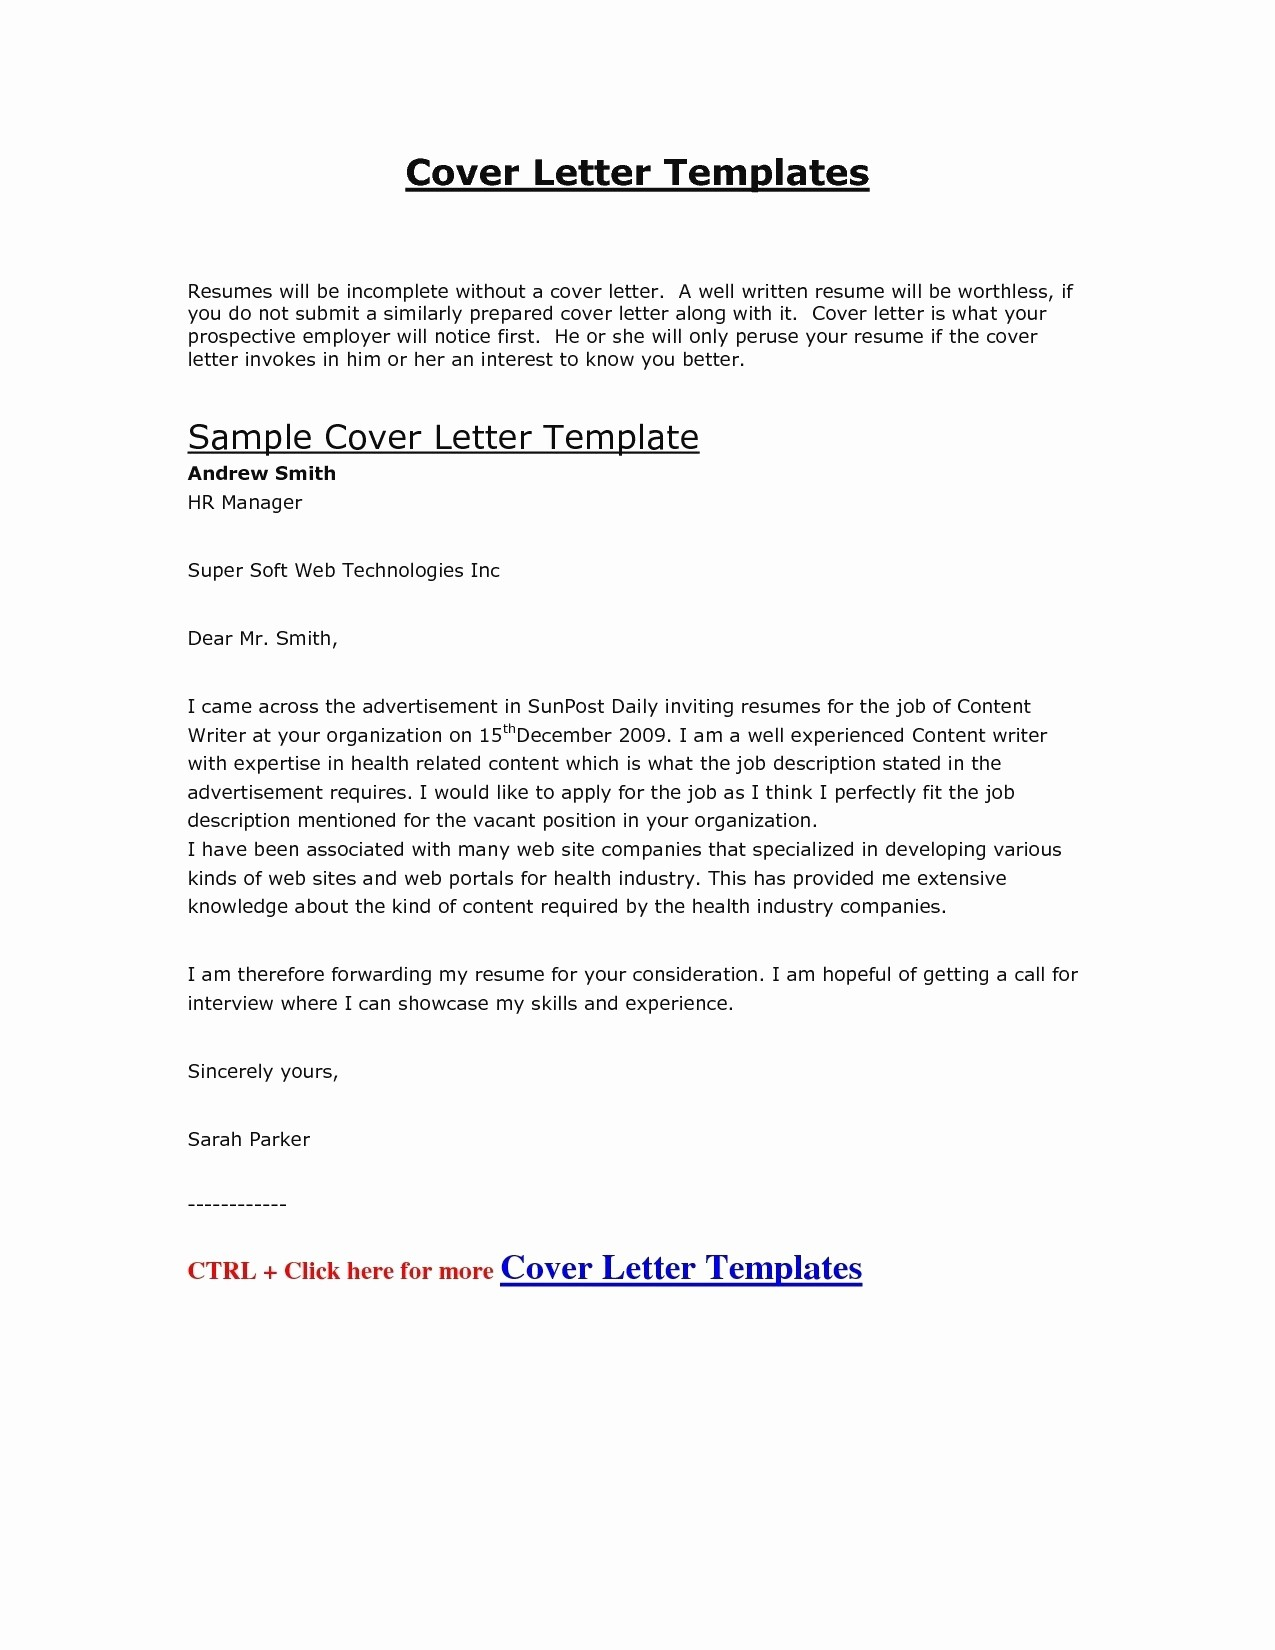 Cover Letter Template No Experience - Job Application Letter format Template Copy Cover Letter Template Hr